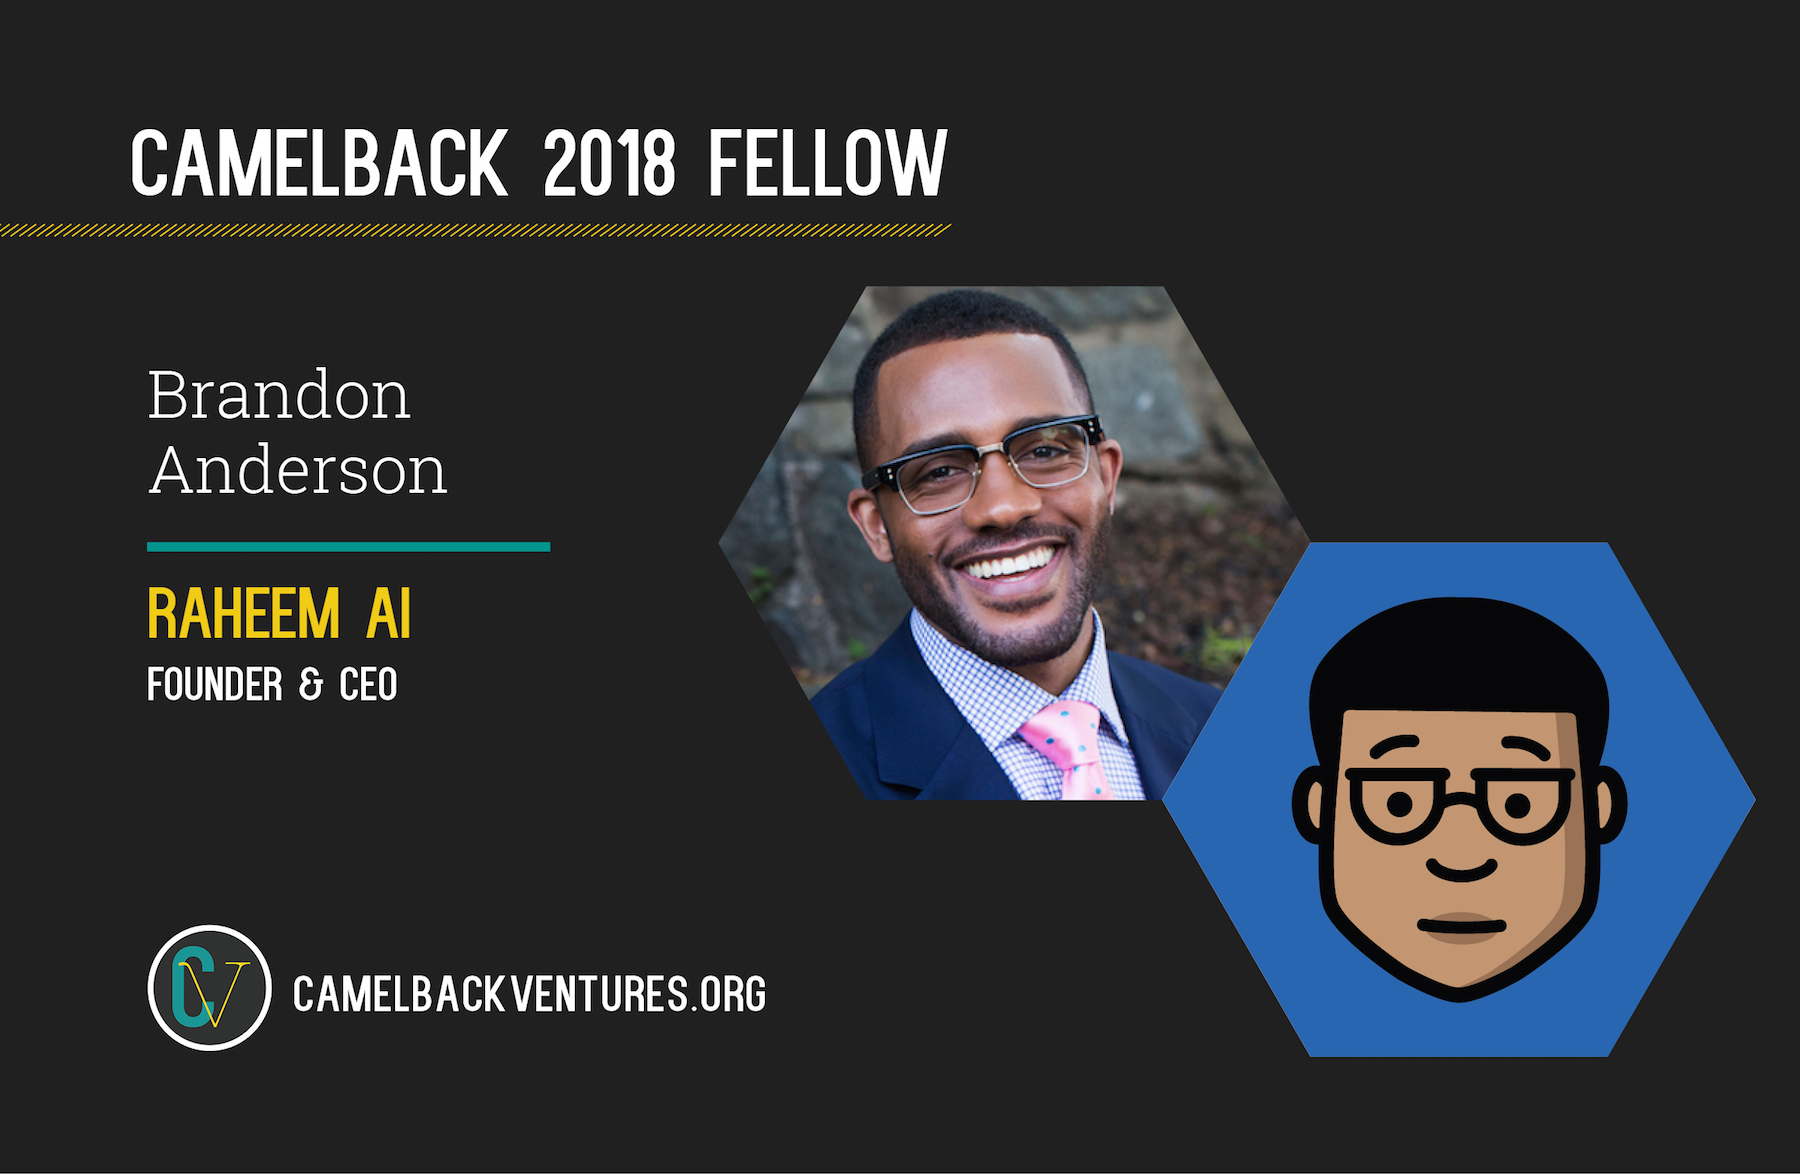 2018camelbackfellows_brandon.jpg